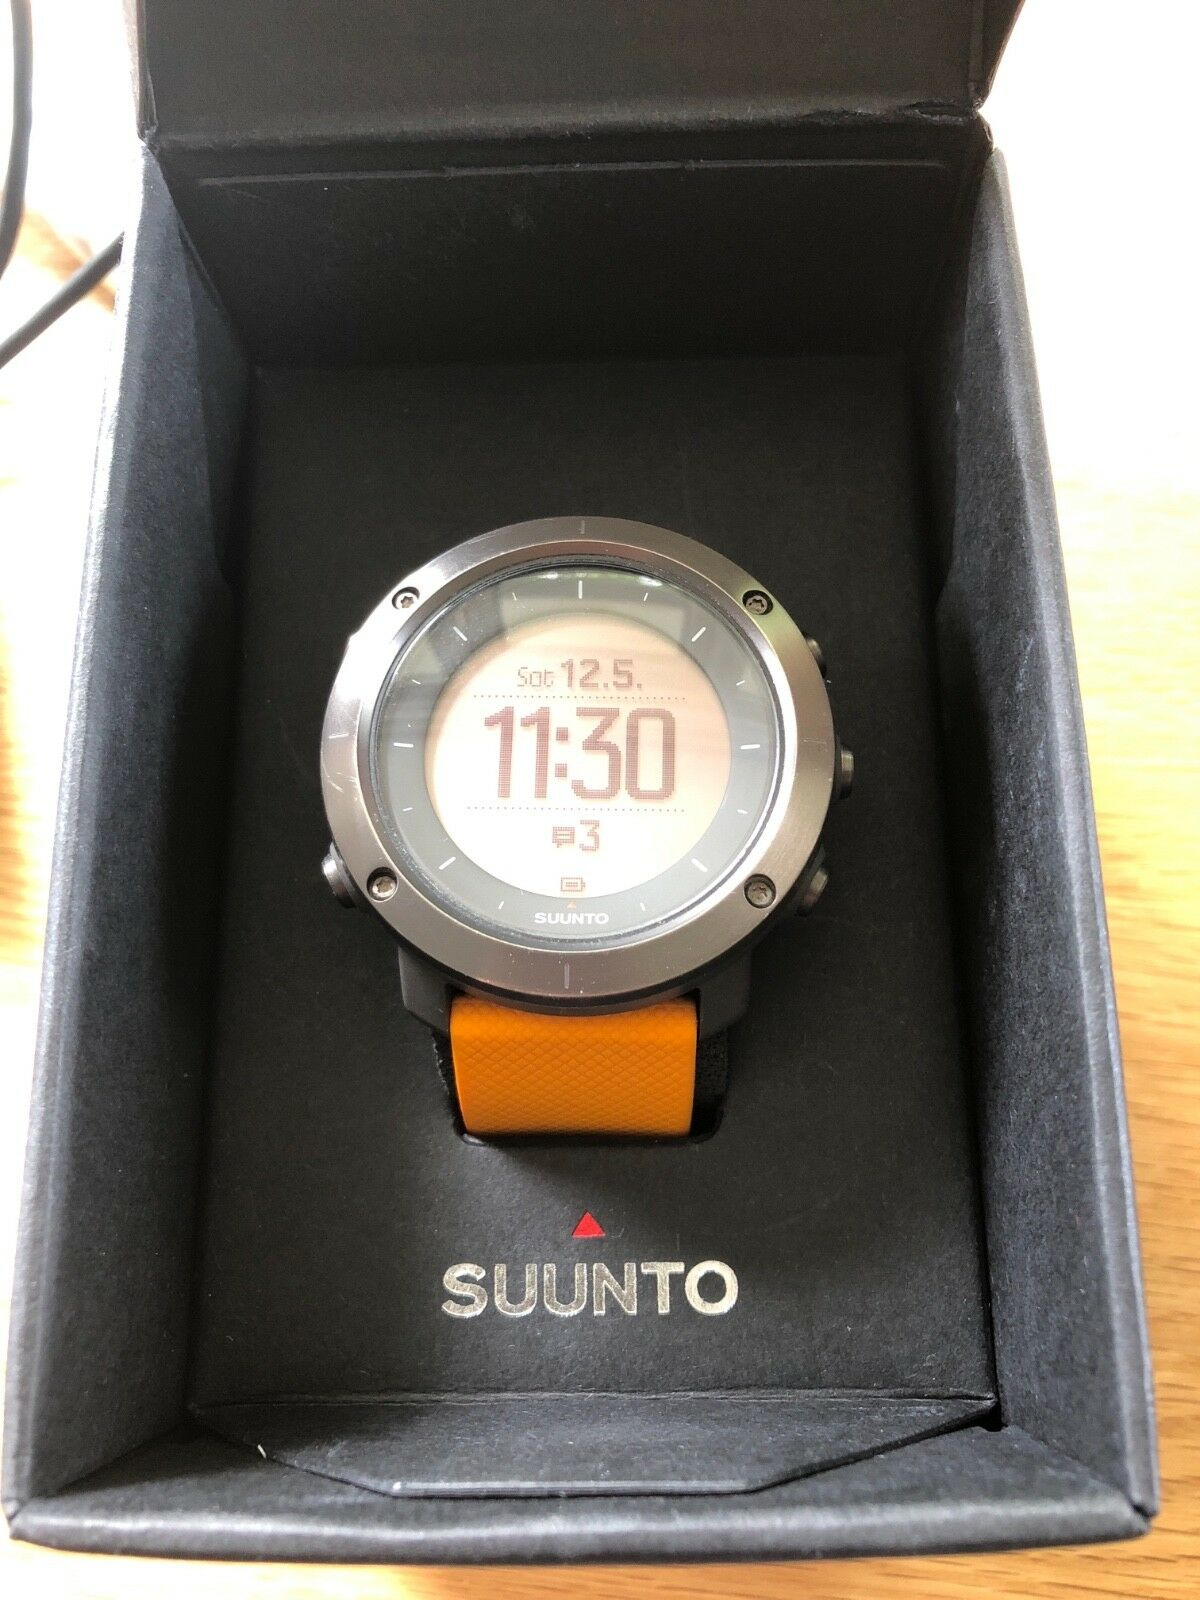 Suunto Traverse Graphite Gps Watch 13055 Picclick Uk Black Outdoor Watches With Glonass 1 Of 3 See More